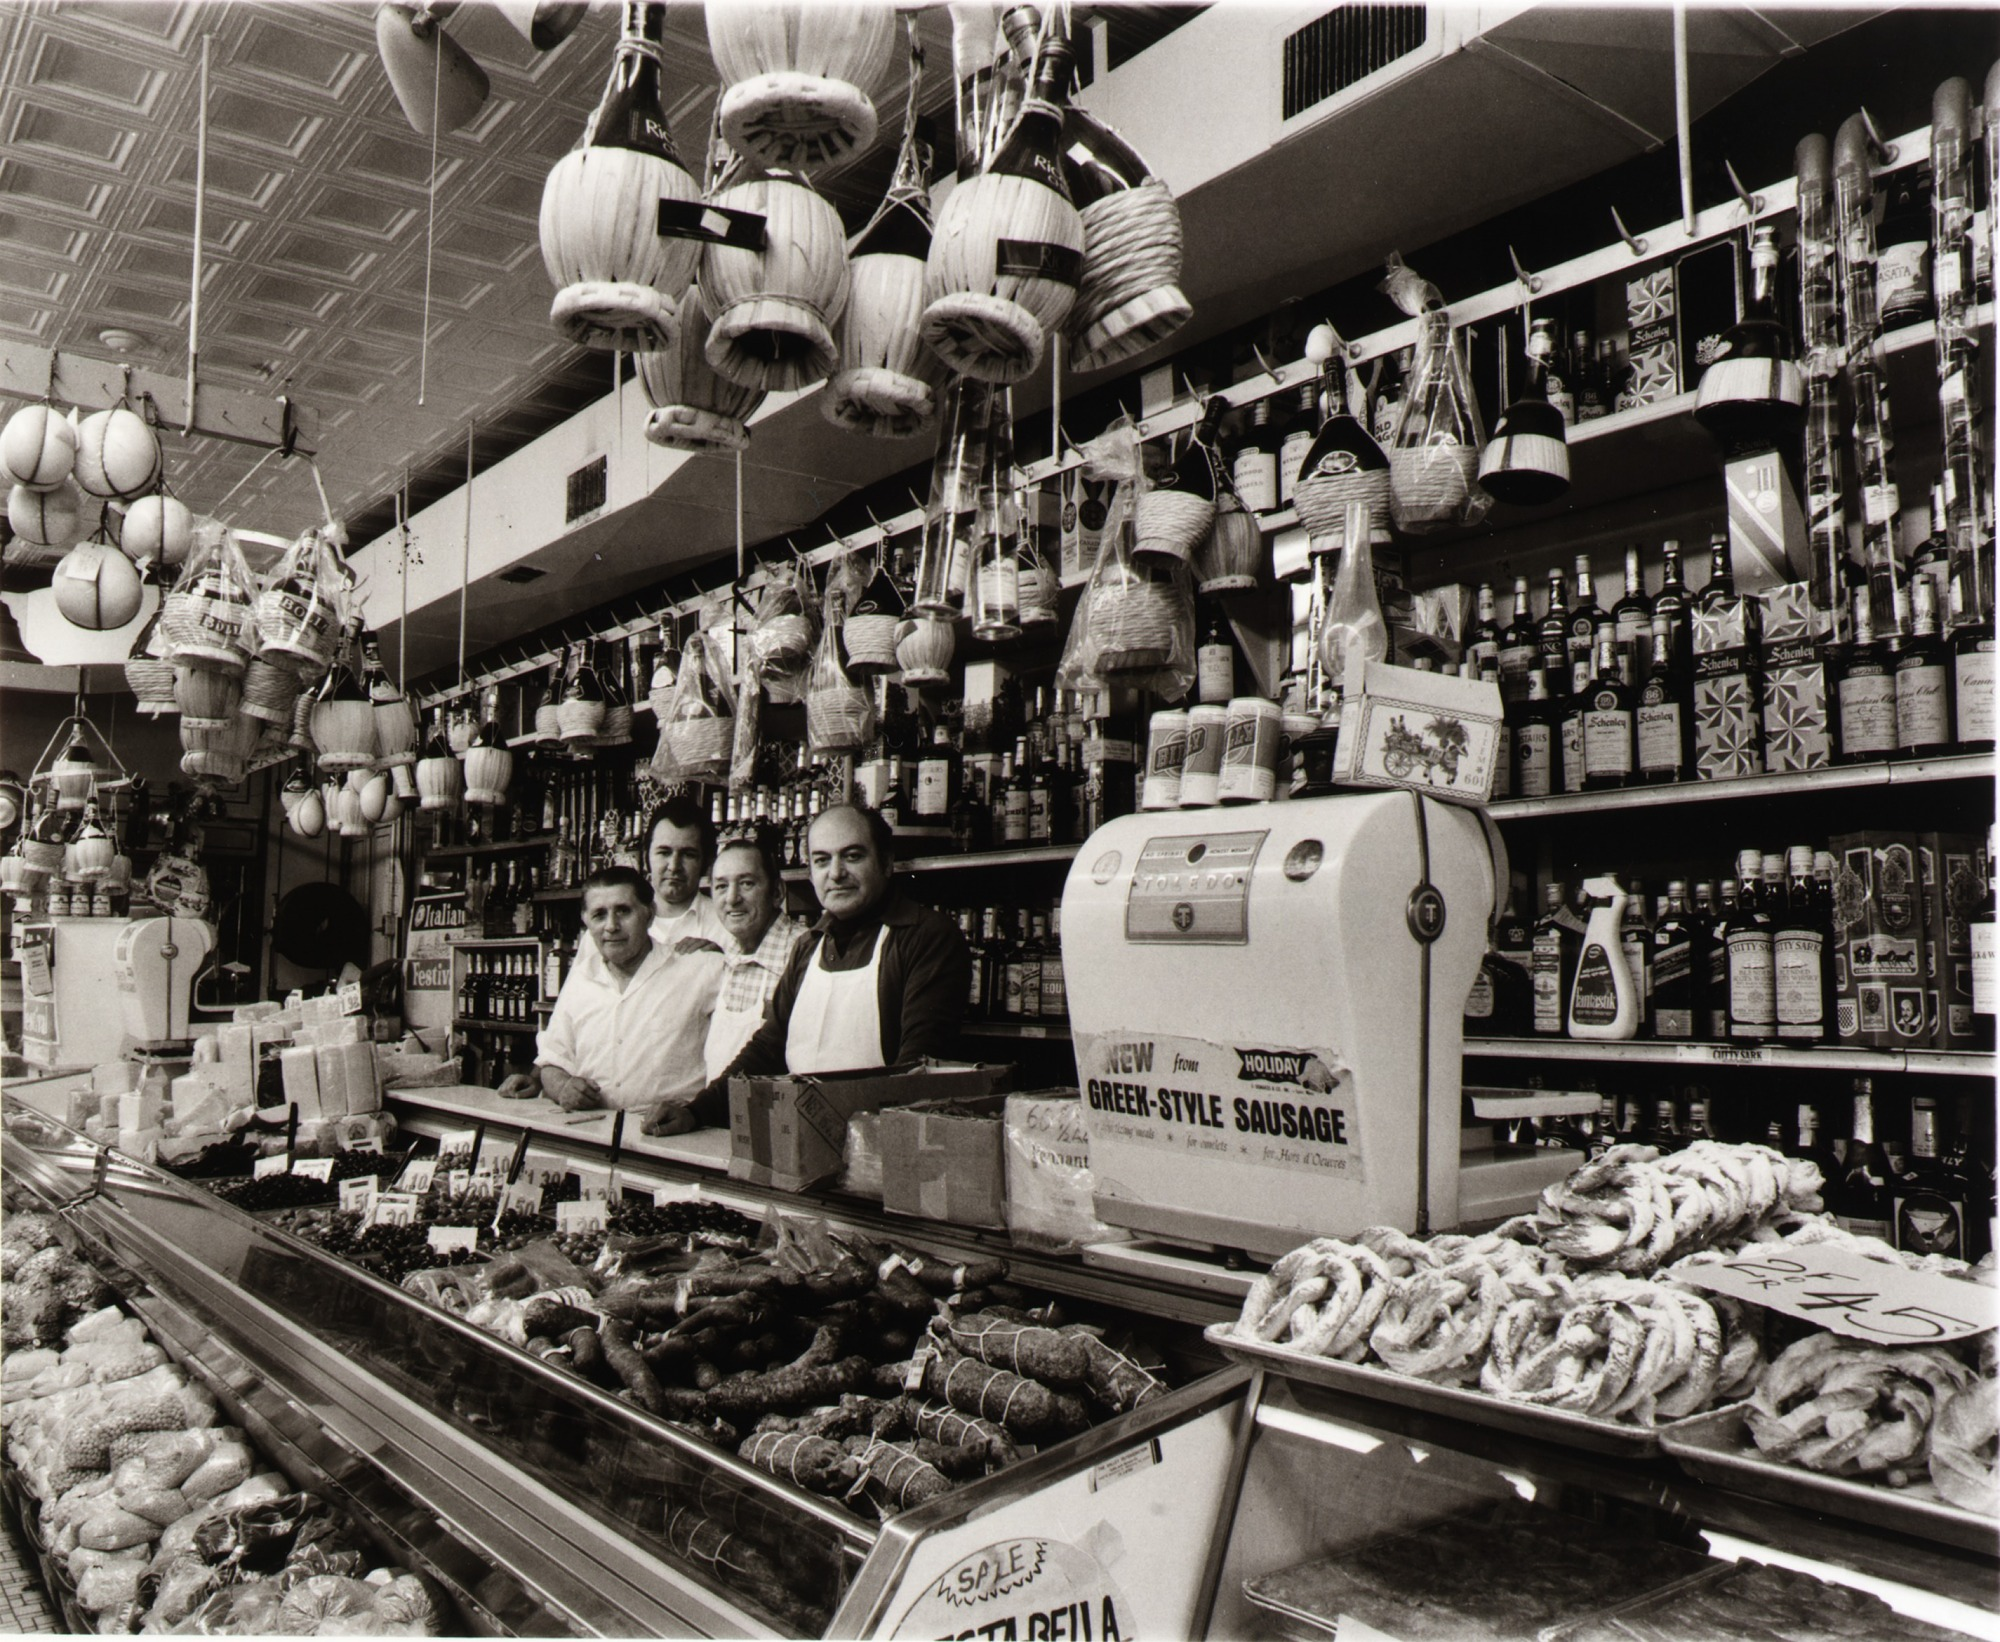 Stella Foods, owned and operated by the Kostis family for twenty-one years, features the finest quality imported foods, wines, homemade Italian breads, and Greek pastries in Highlandtown.